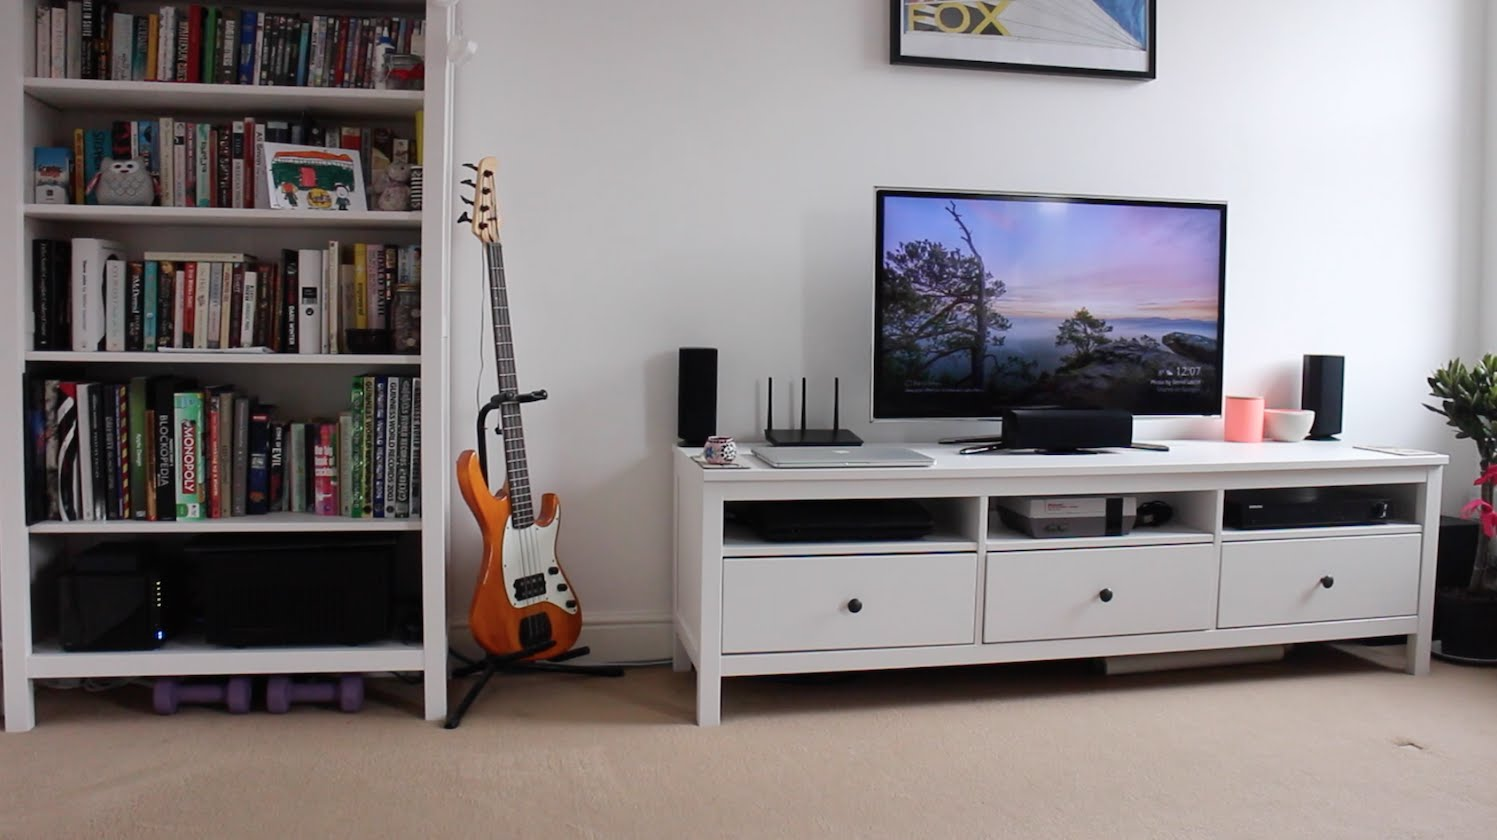 How To Take Your Basic Home Theatre To The Next Level Best Buy Blog